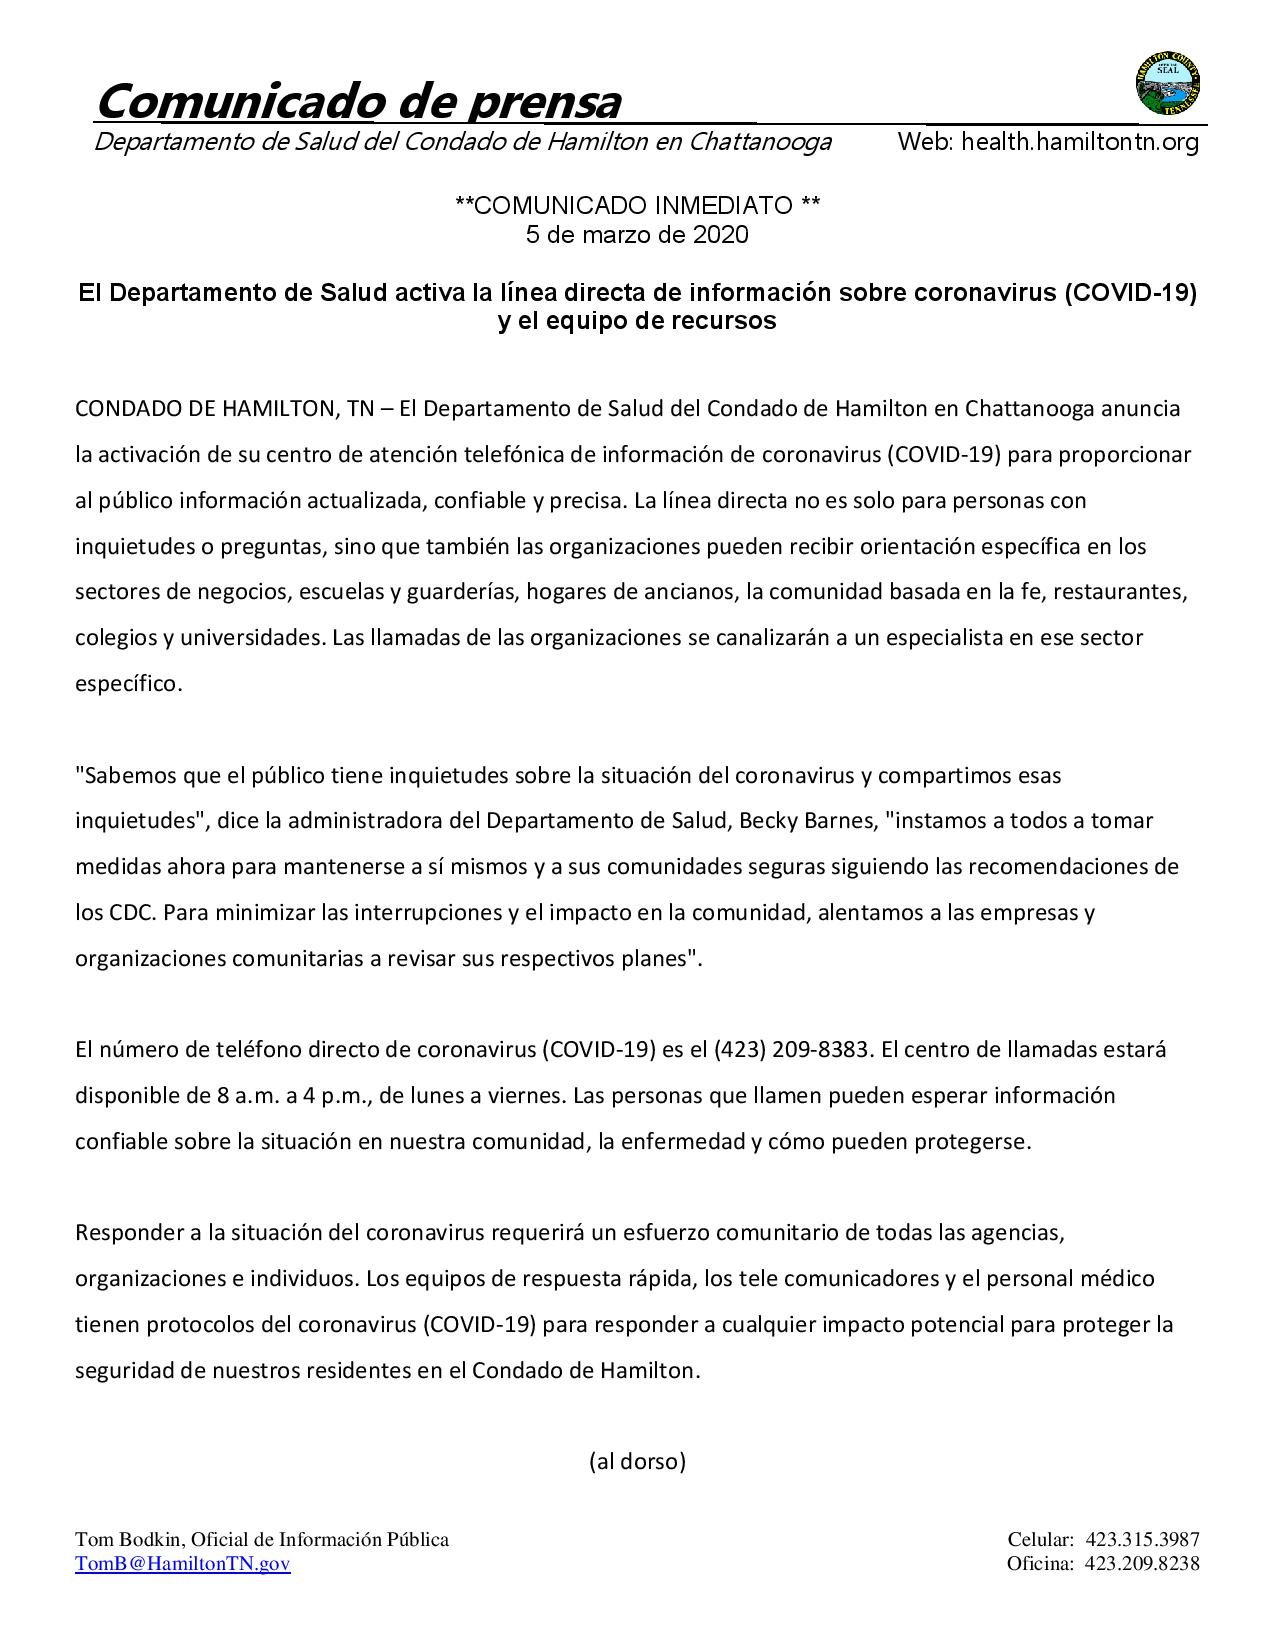 Press release_coronavirus_rev6 (Spanish)-page-001